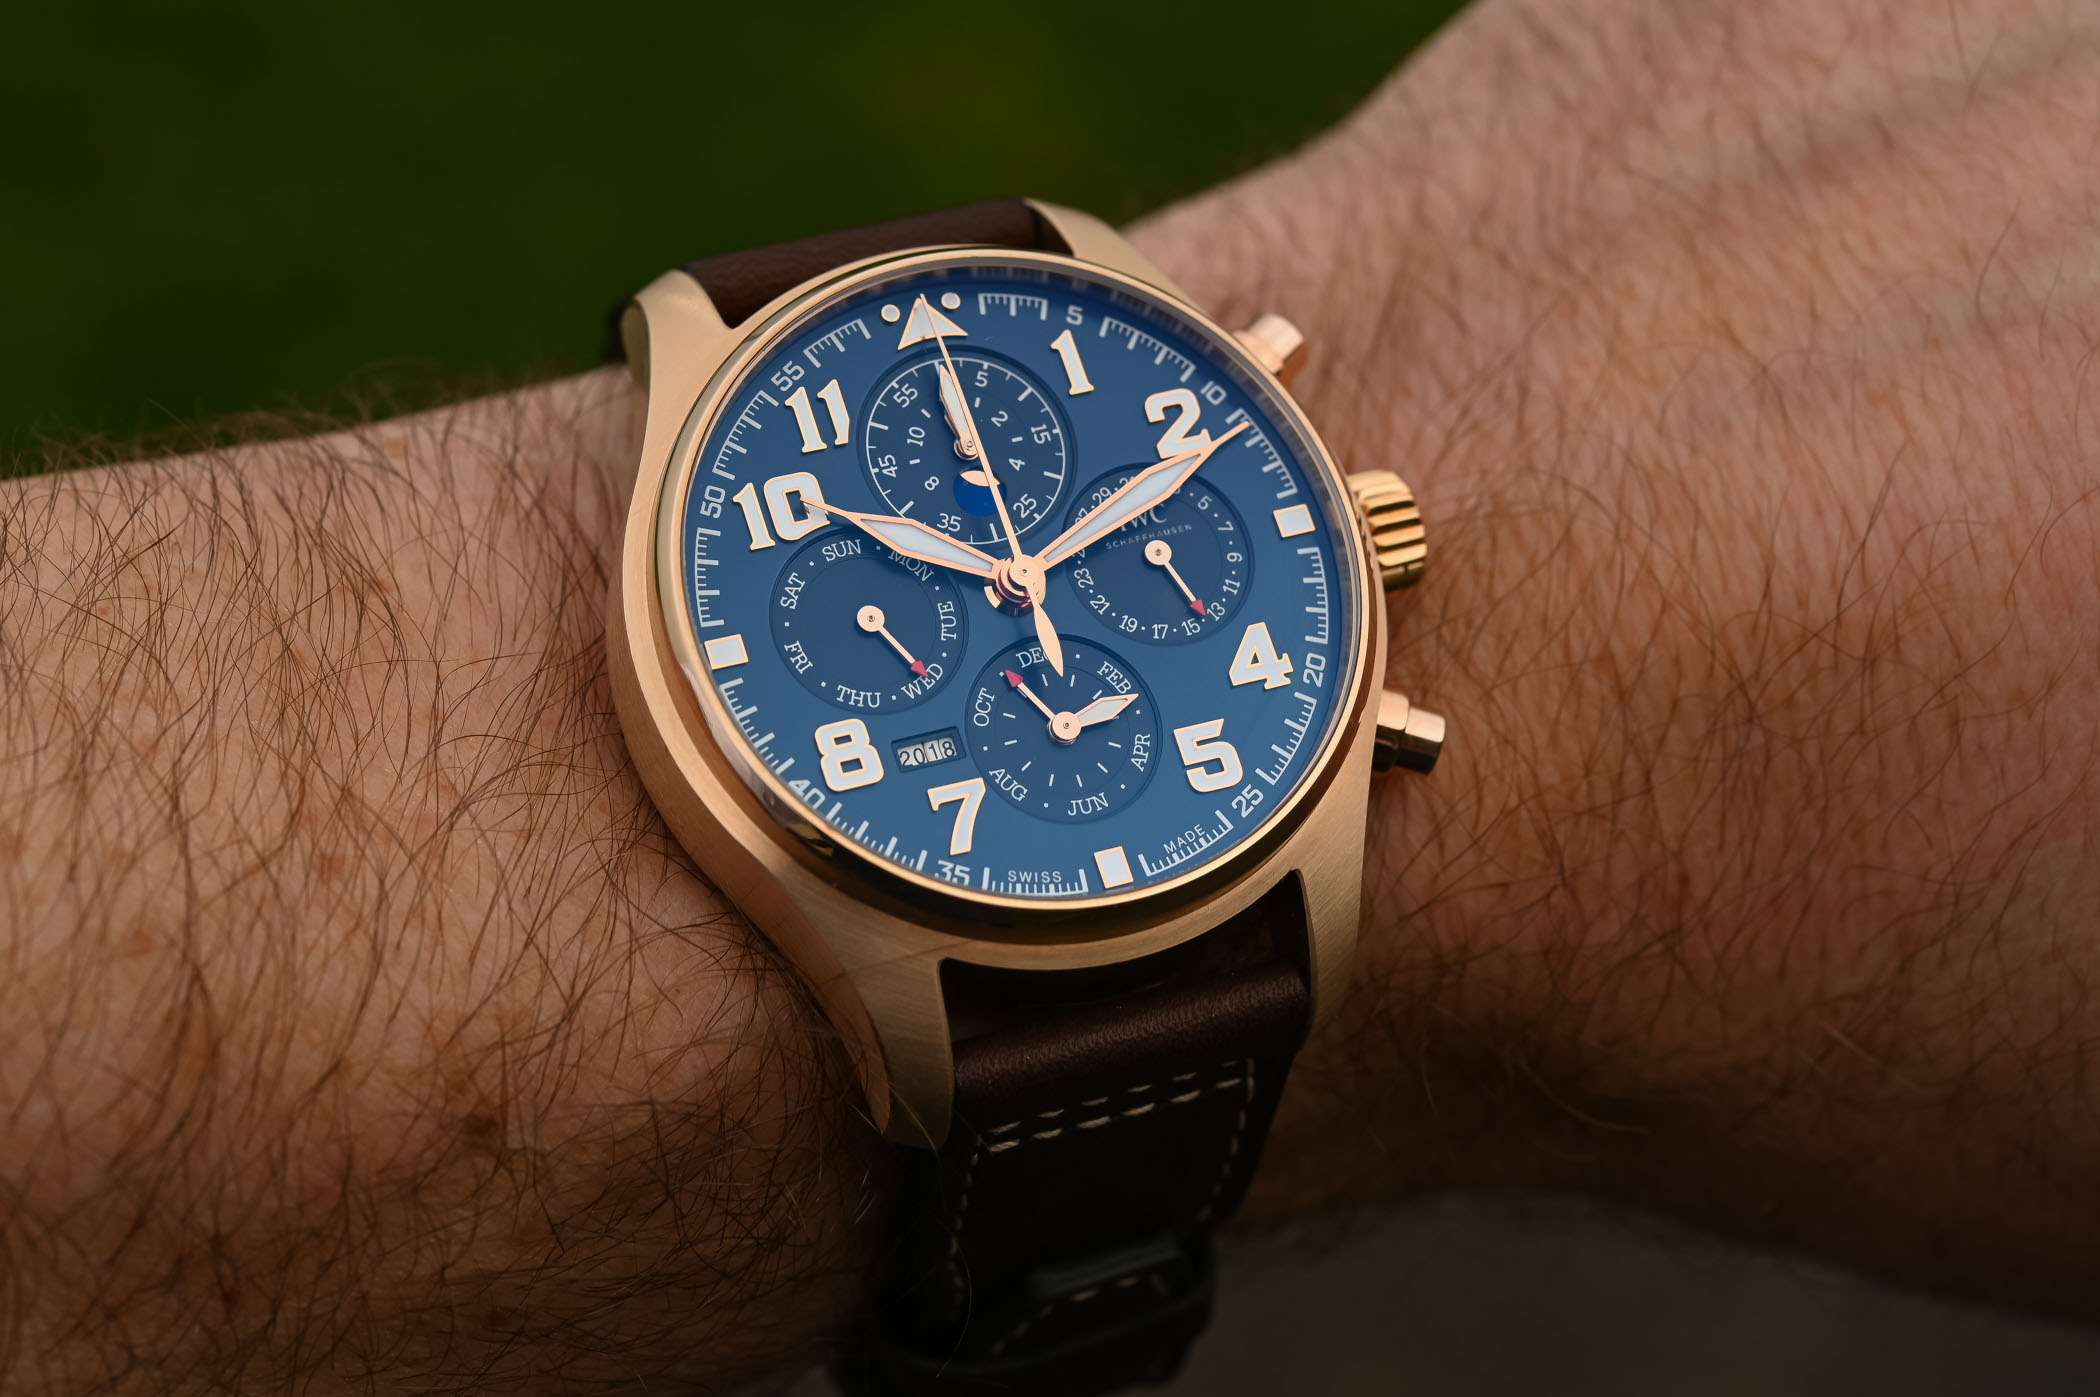 IWC Pilots Watch Perpetual Calendar Chronograph Le Petit Prince IW392202 - SIHH 2019 - 5